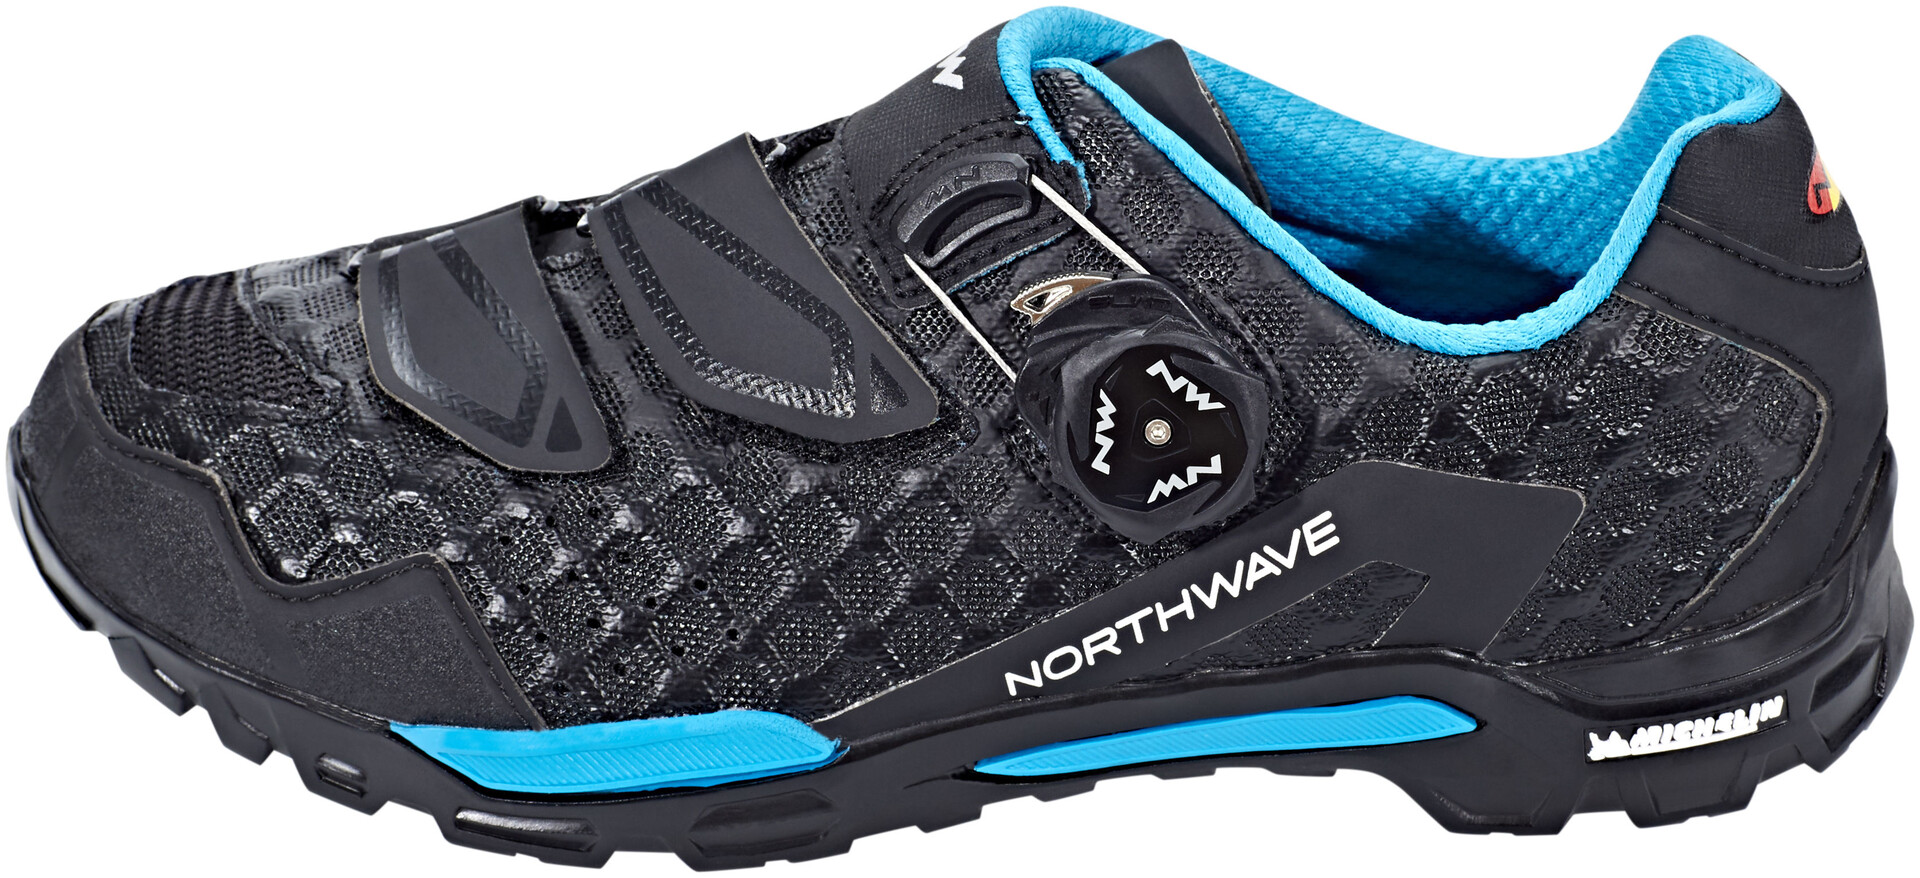 Outcross Northwave Outcross Plus Northwave MujerBlackgreen Zapatillas oQCxedEWrB